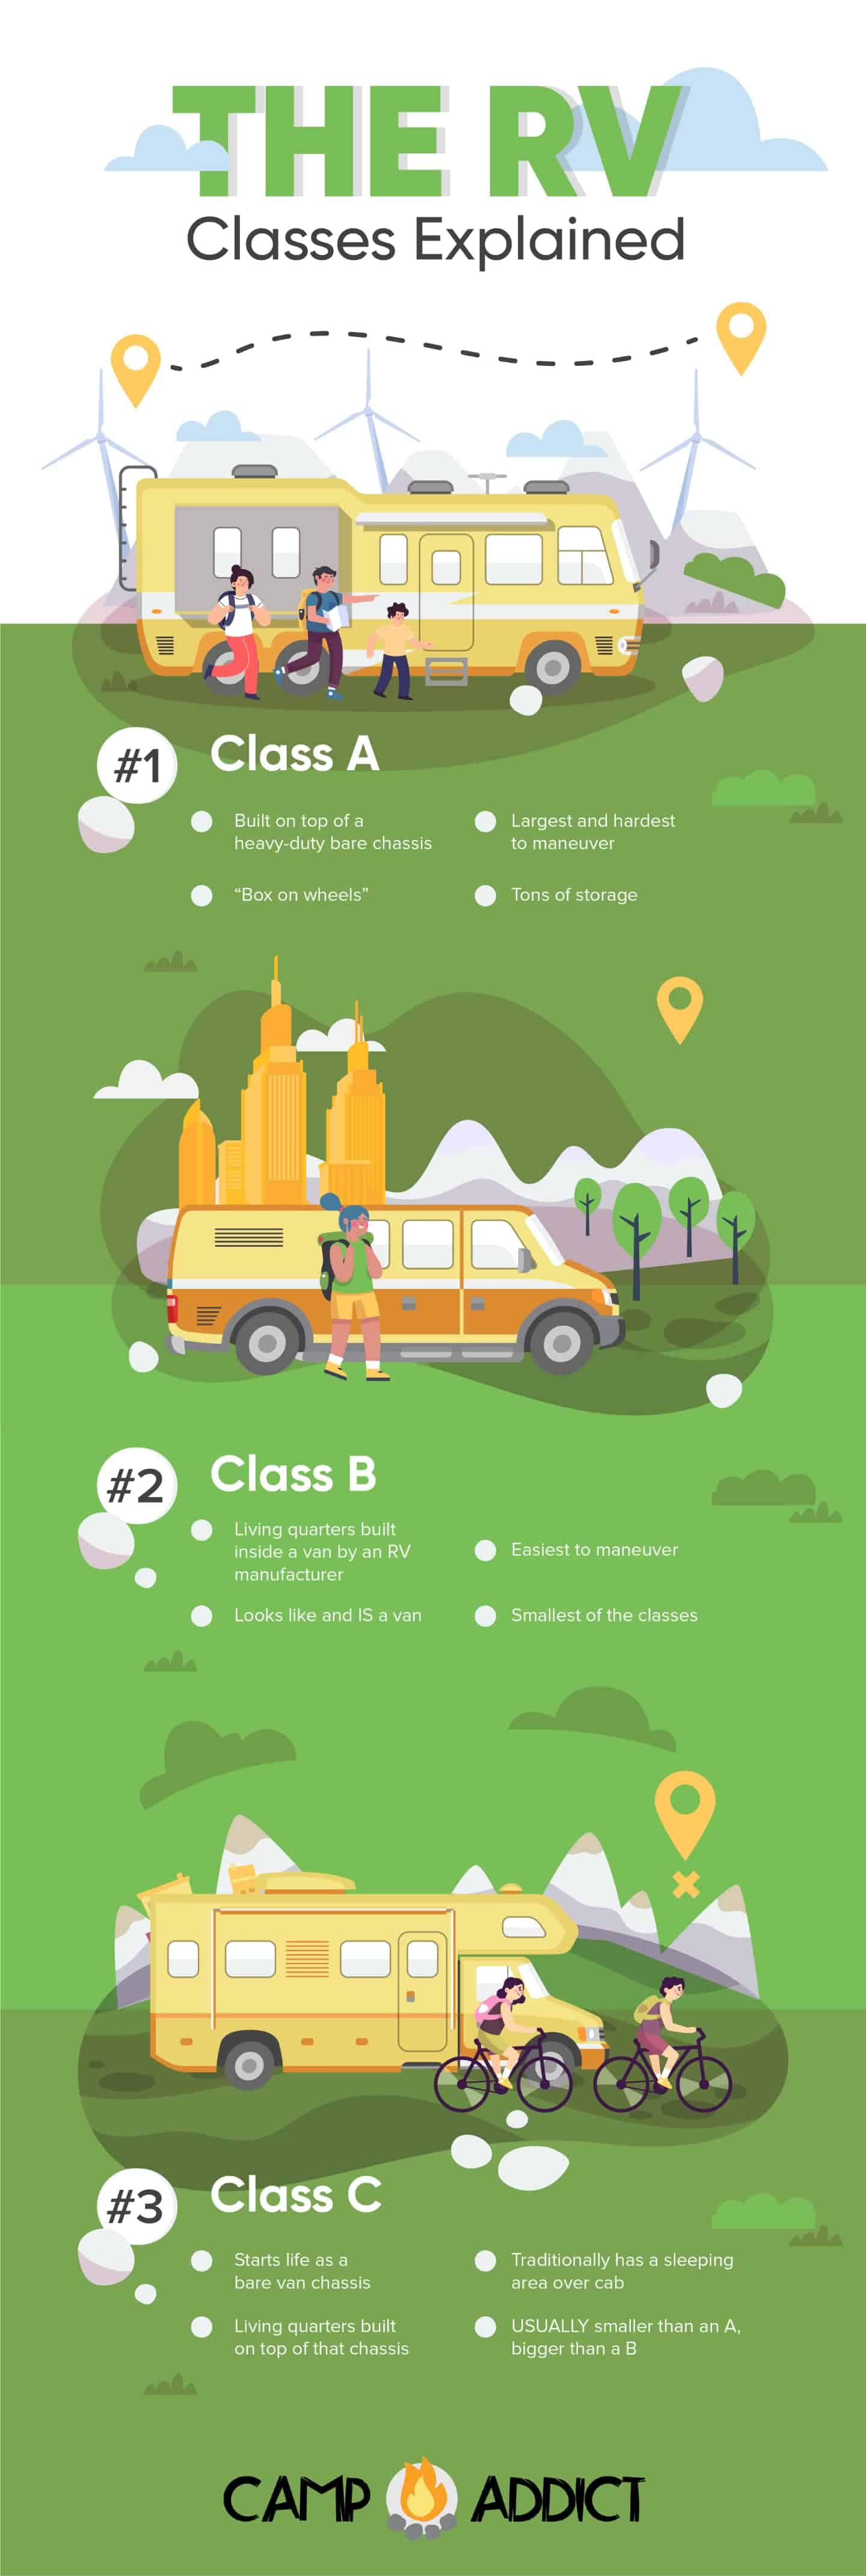 Motorhome Classes Explained infographic